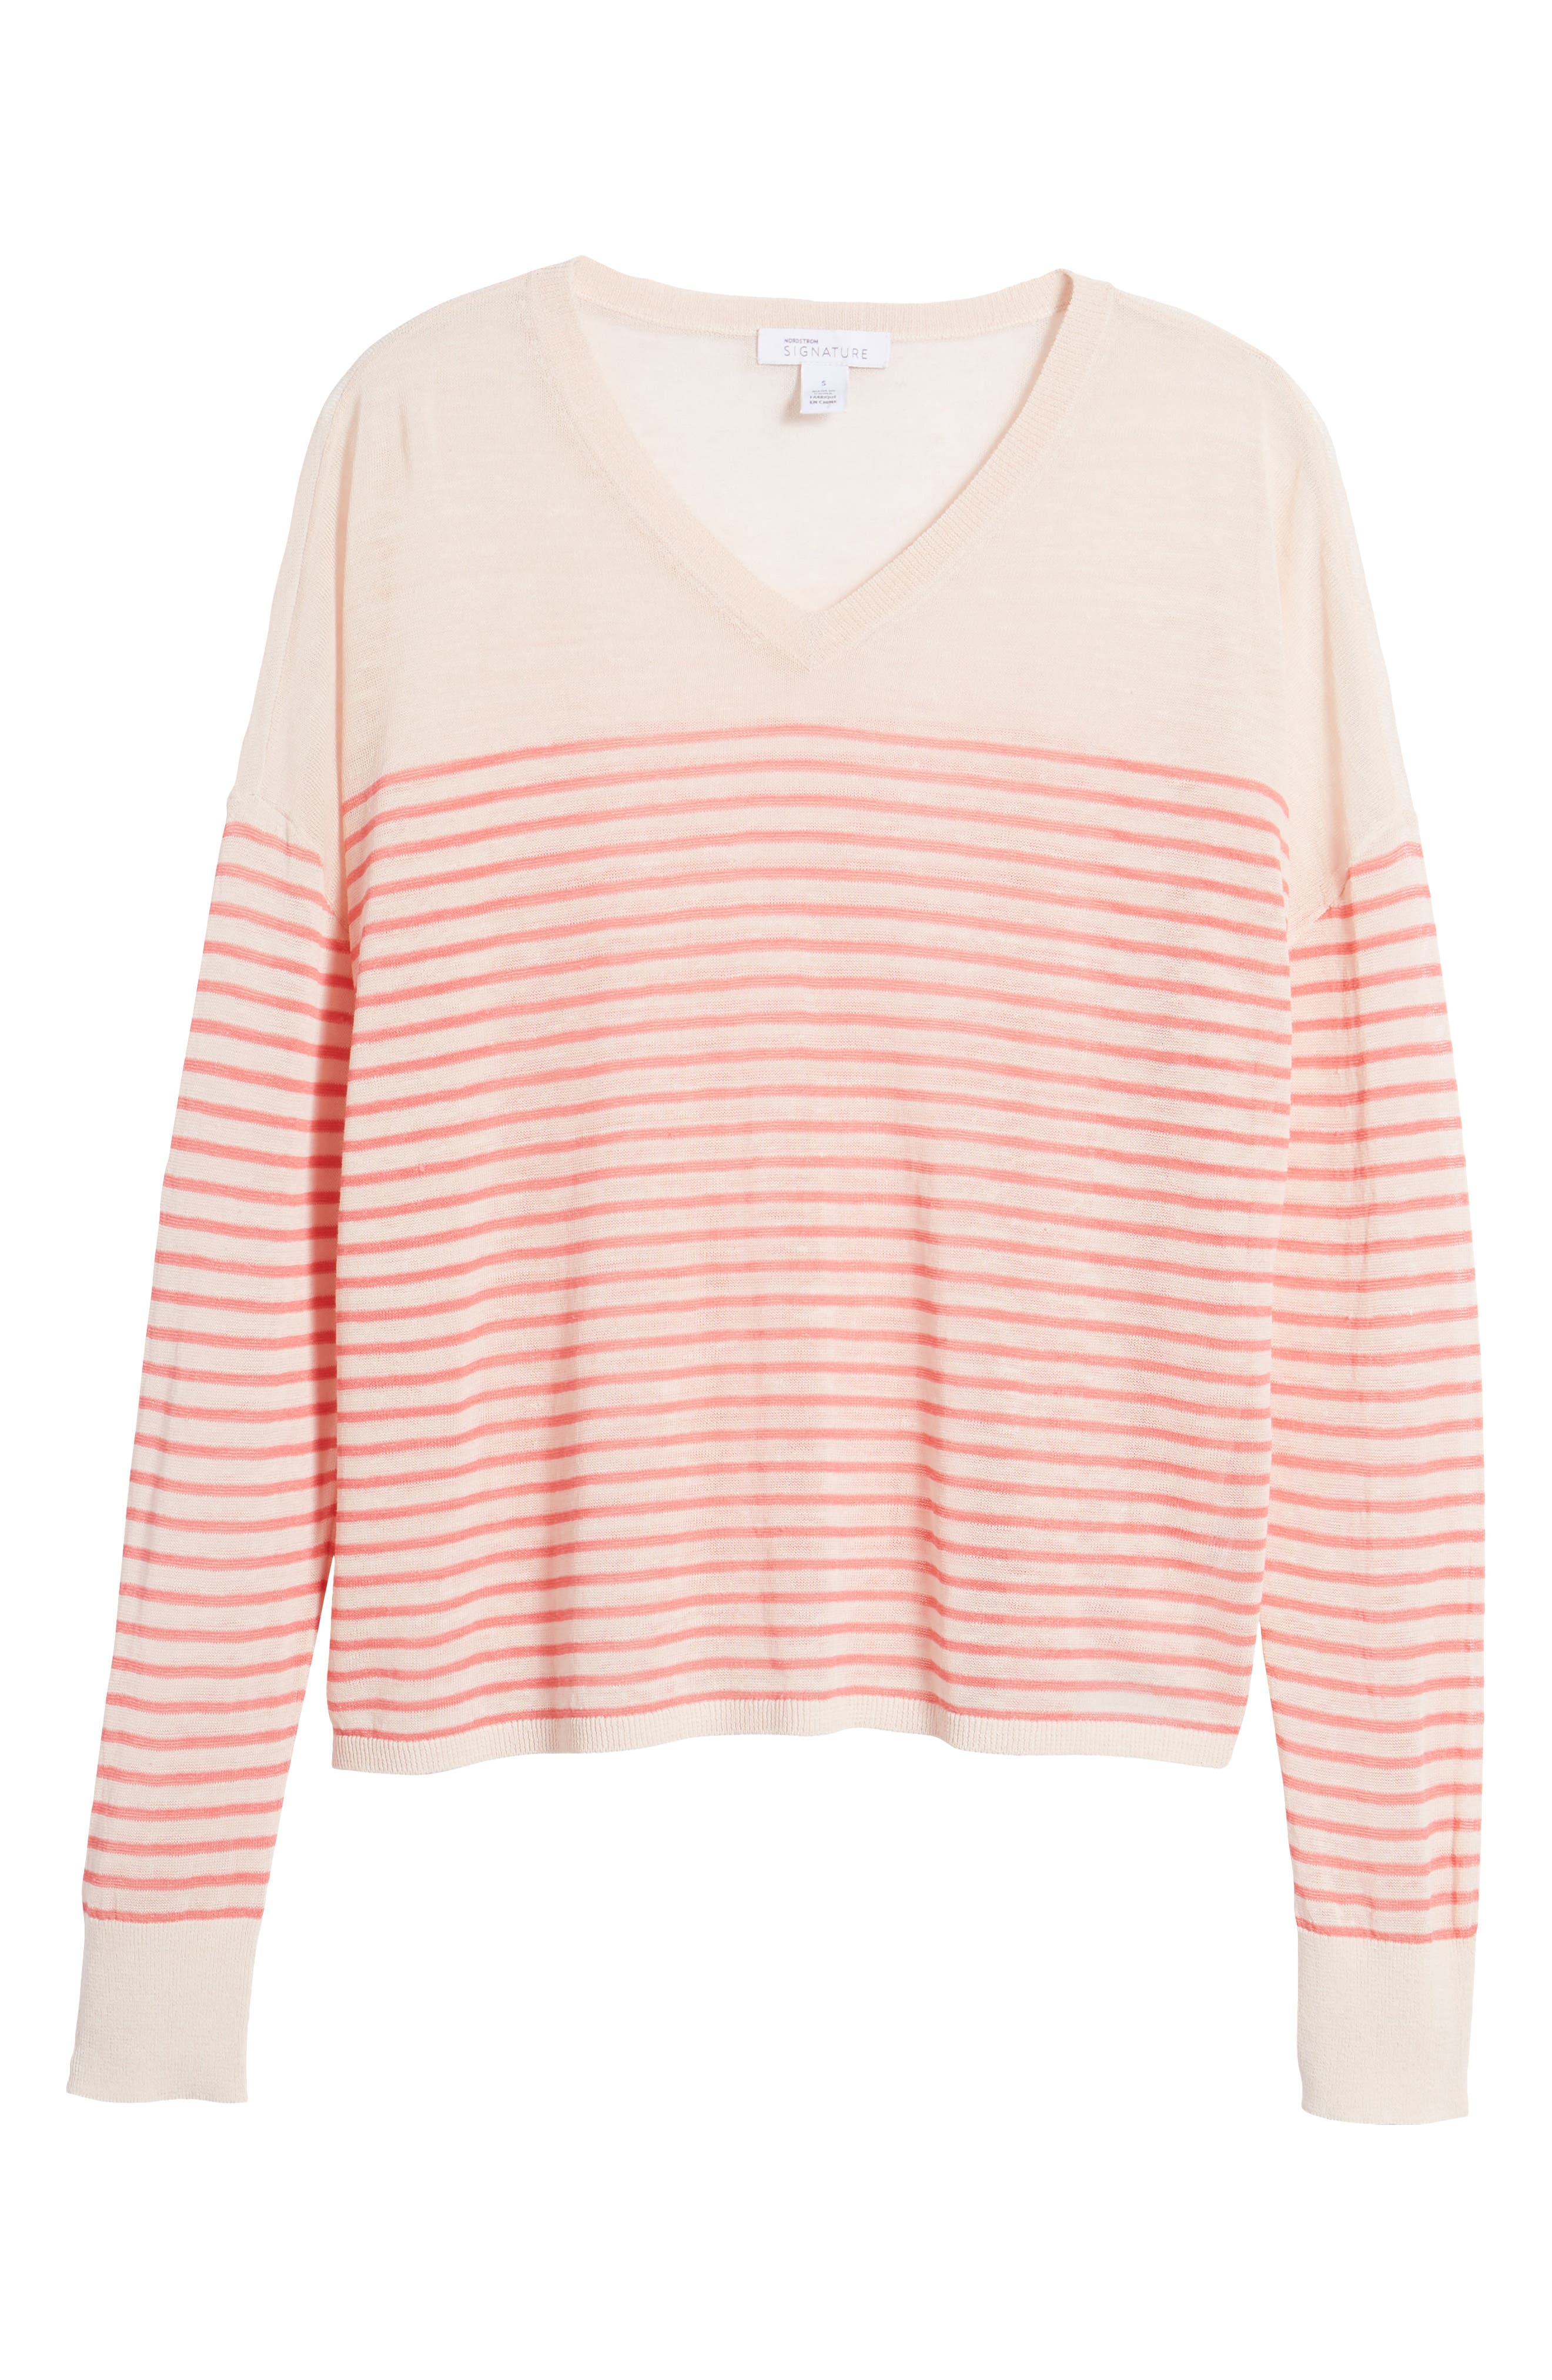 Stripe Linen Blend Sweater,                             Alternate thumbnail 7, color,                             Pink Peony- Coral Rose Stripe